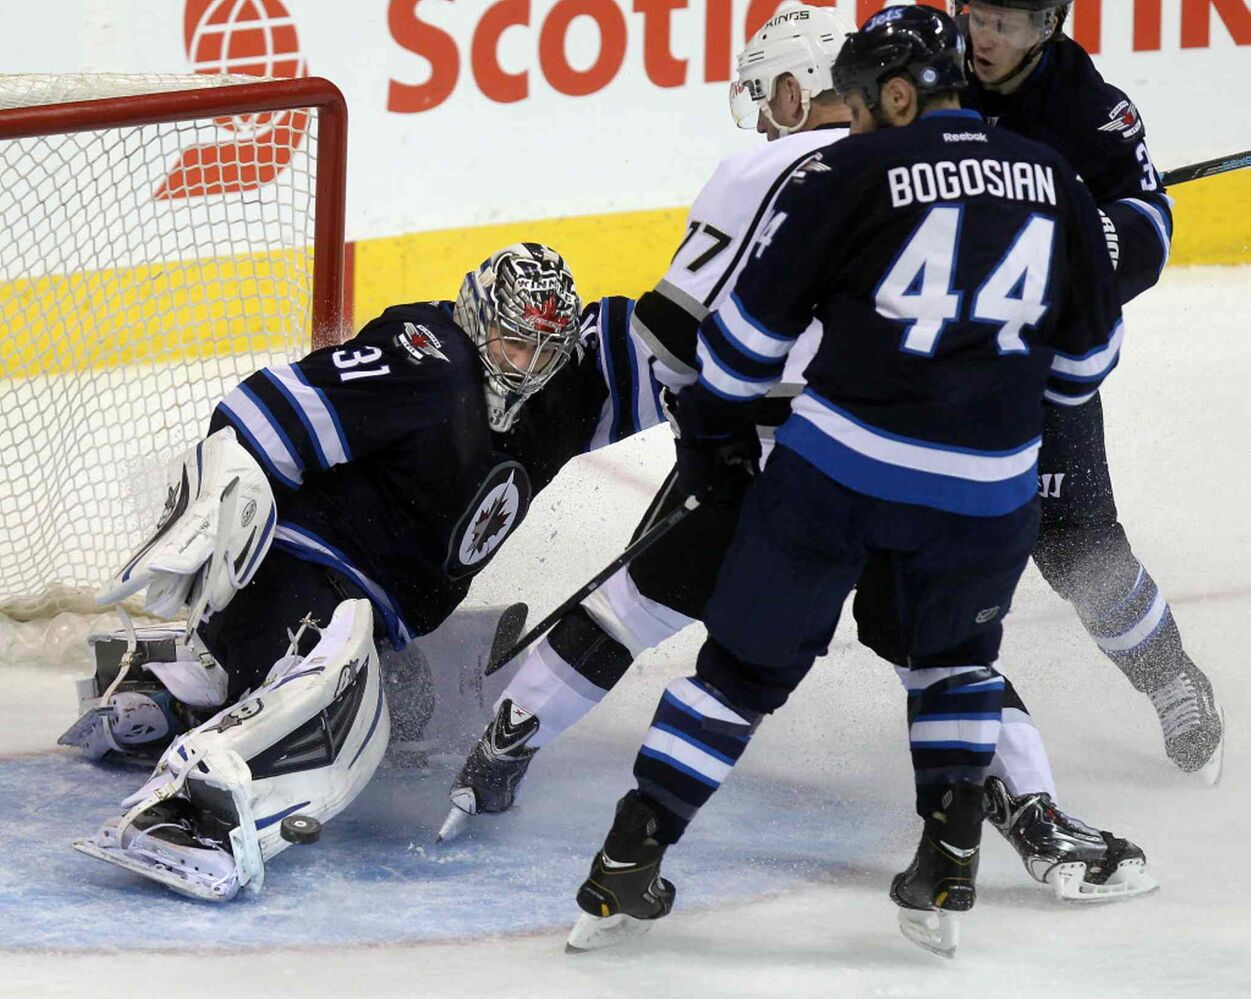 Ondrej Pavelec covers up as Zach Bogosian, Tobias Engstrom and Los Angeles King Jeff Carter slide to a stop in the crease in the third period. (Phil Hossack / Winnipeg Free Press)